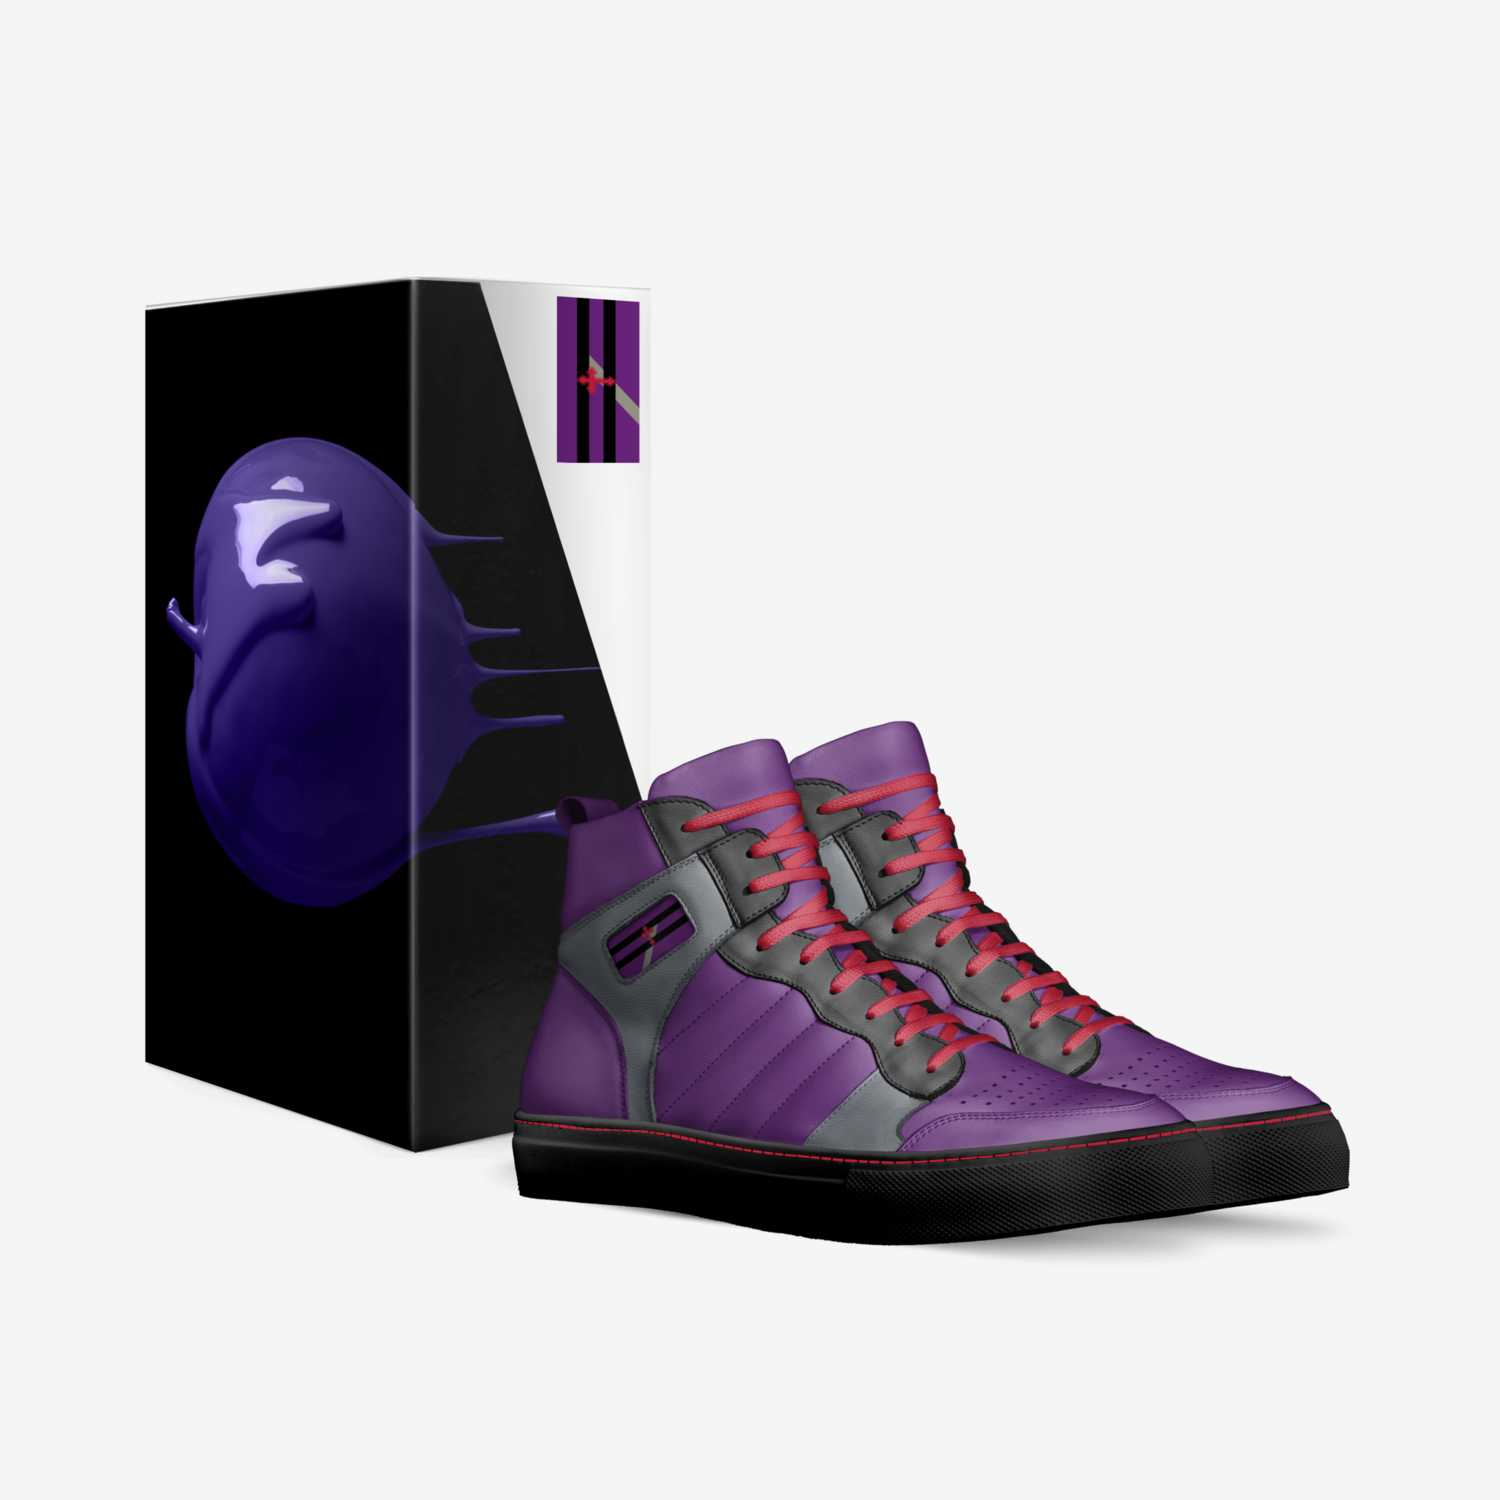 Stratton custom made in Italy shoes by Tyler Hibler | Box view